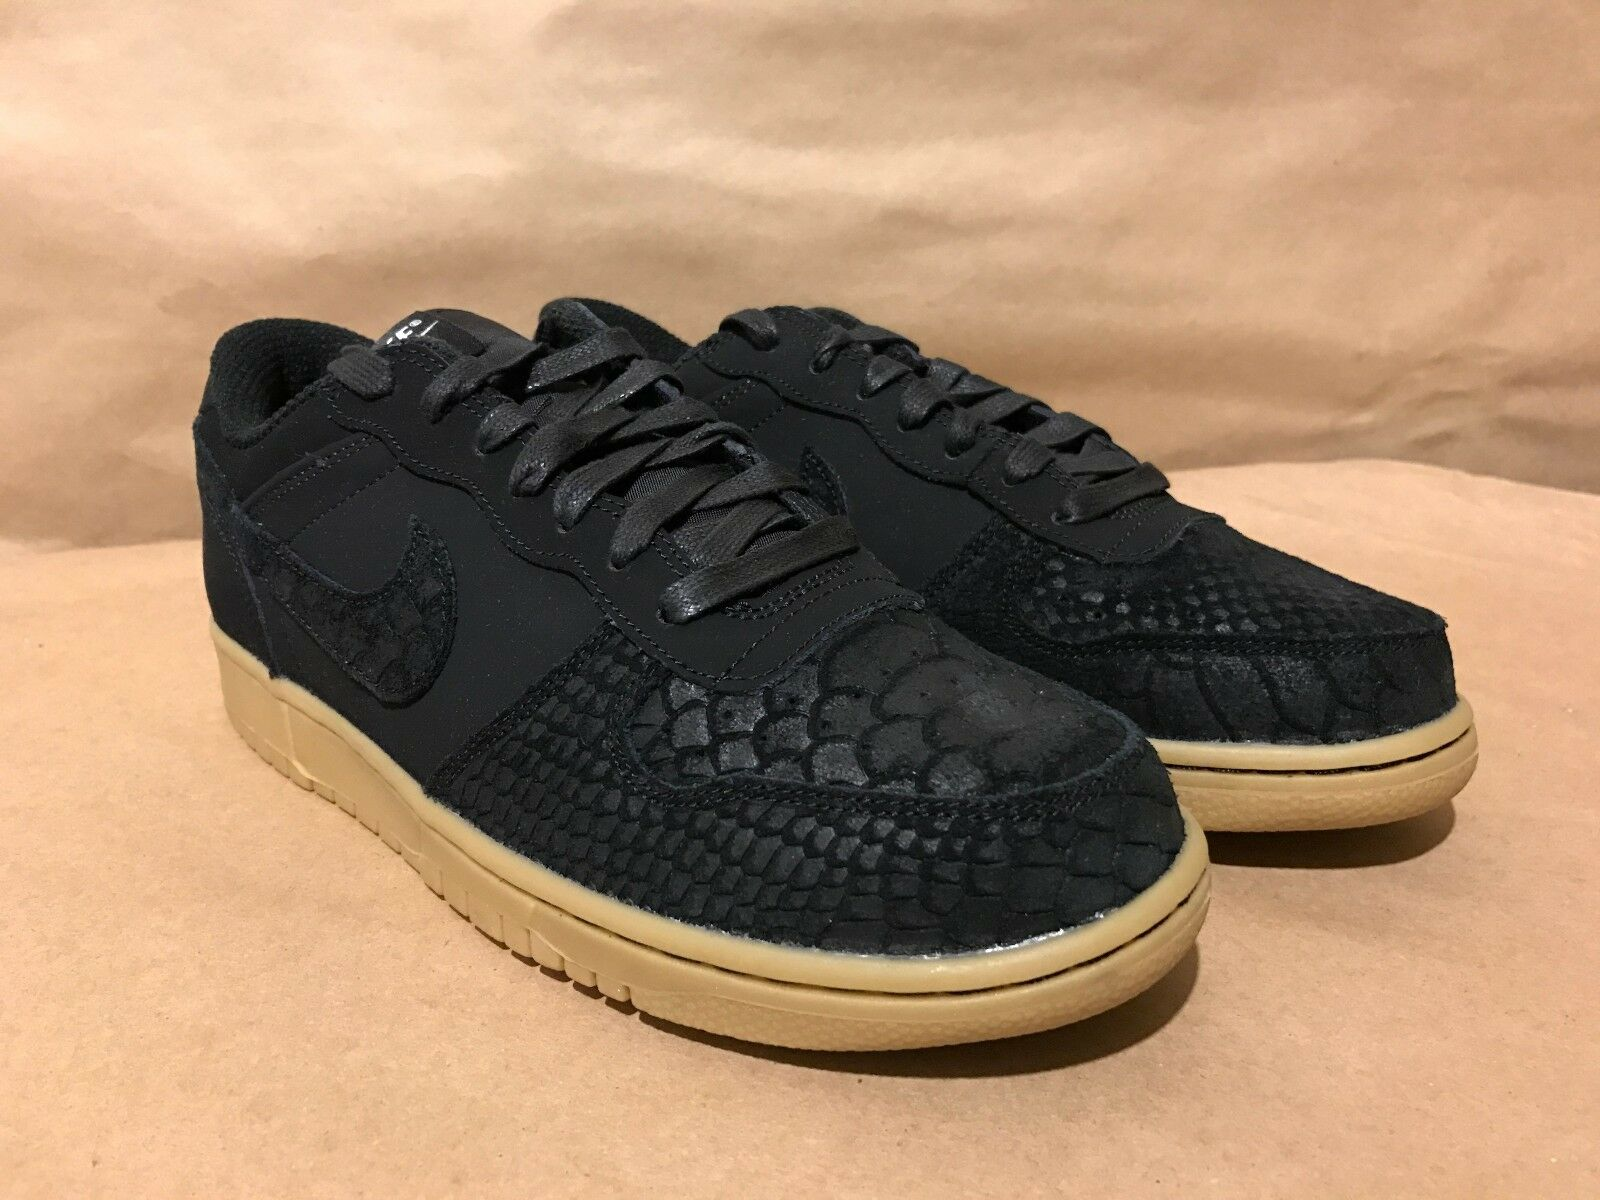 854166-002 Big Nike Low Lux Black/Black-Gum Light Brown-WO Sizes Sizes Sizes 8-12 NIB bd6a99